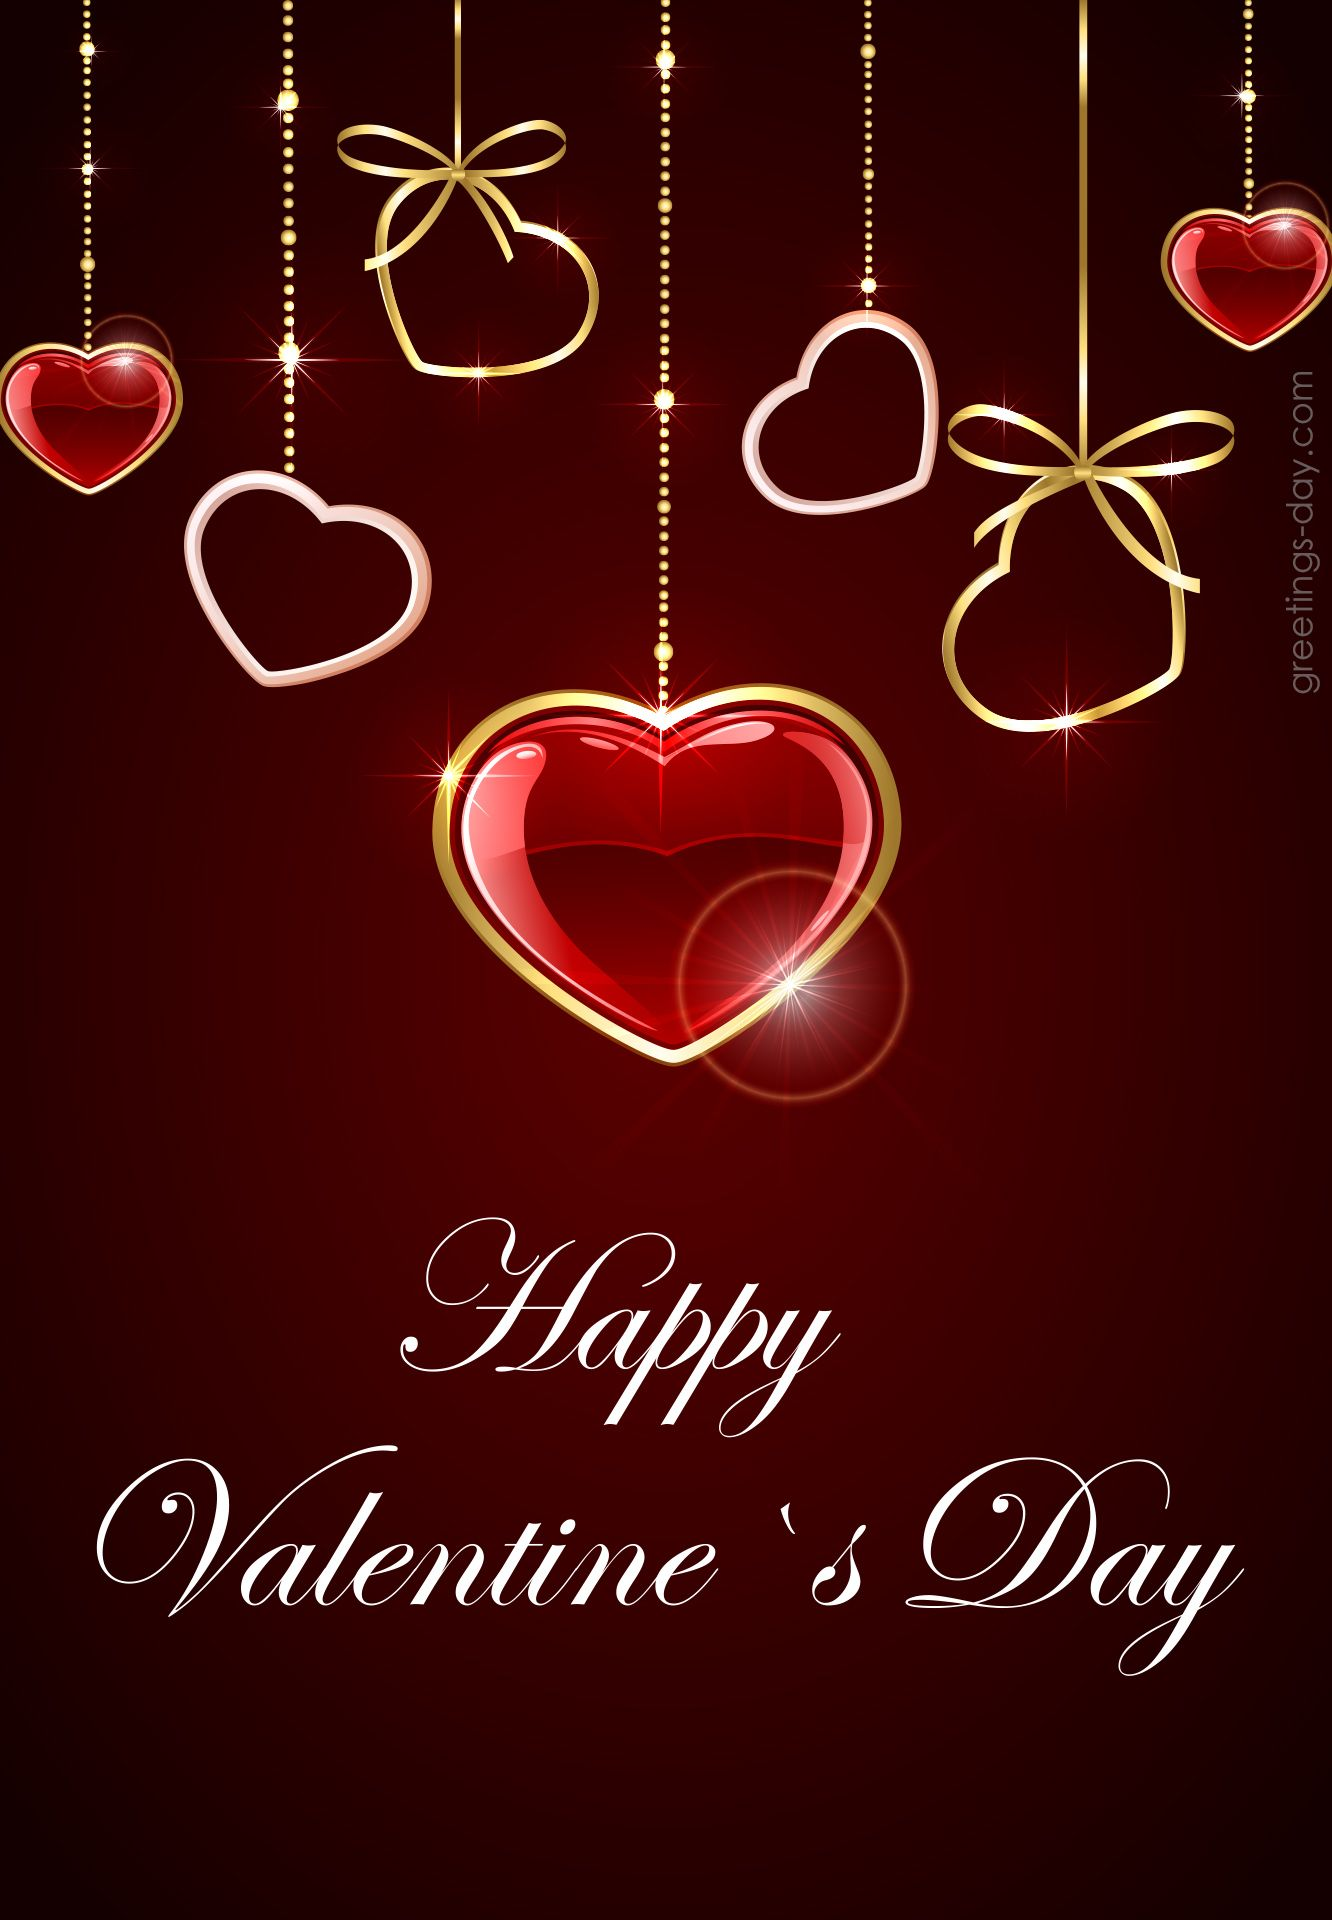 Valentine S Day Cards Love Saying Happy Valentines Day Photos Happy Valentines Day Images Valentines Day Greetings